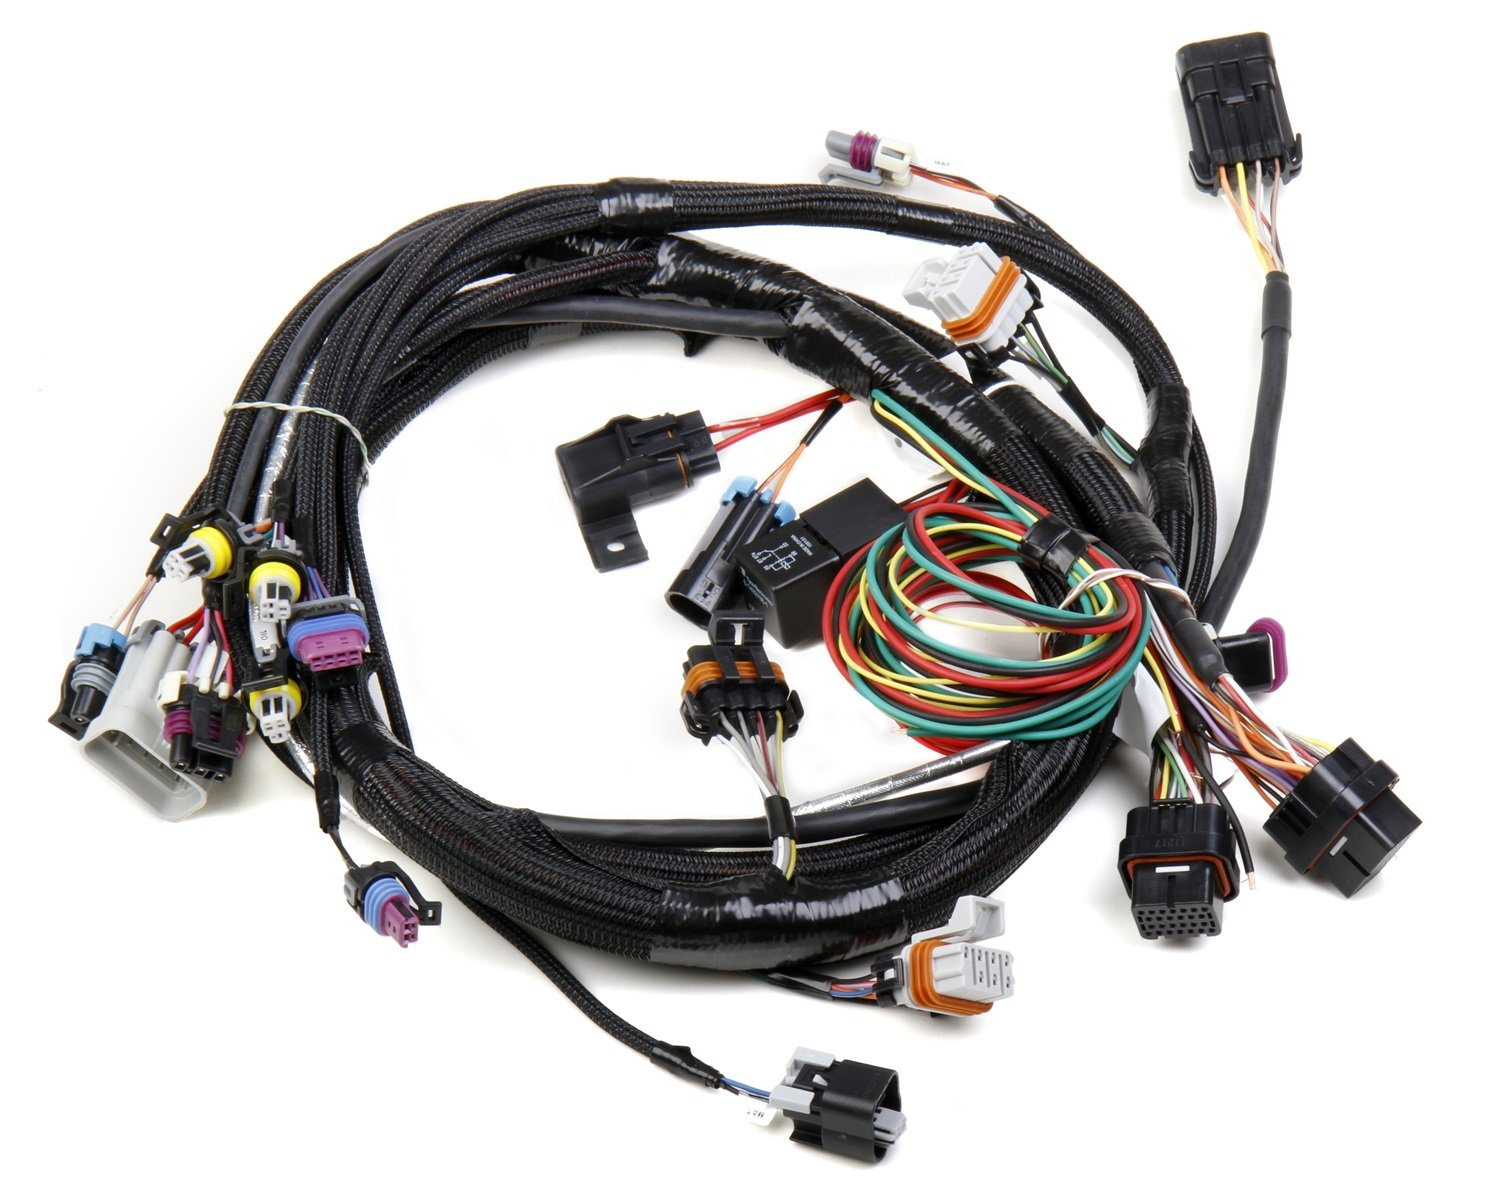 71R9M48Oc L._SL1500_ amazon com holley 558 102 ls1 main harness automotive 6.5 Diesel Wiring Harness at alyssarenee.co